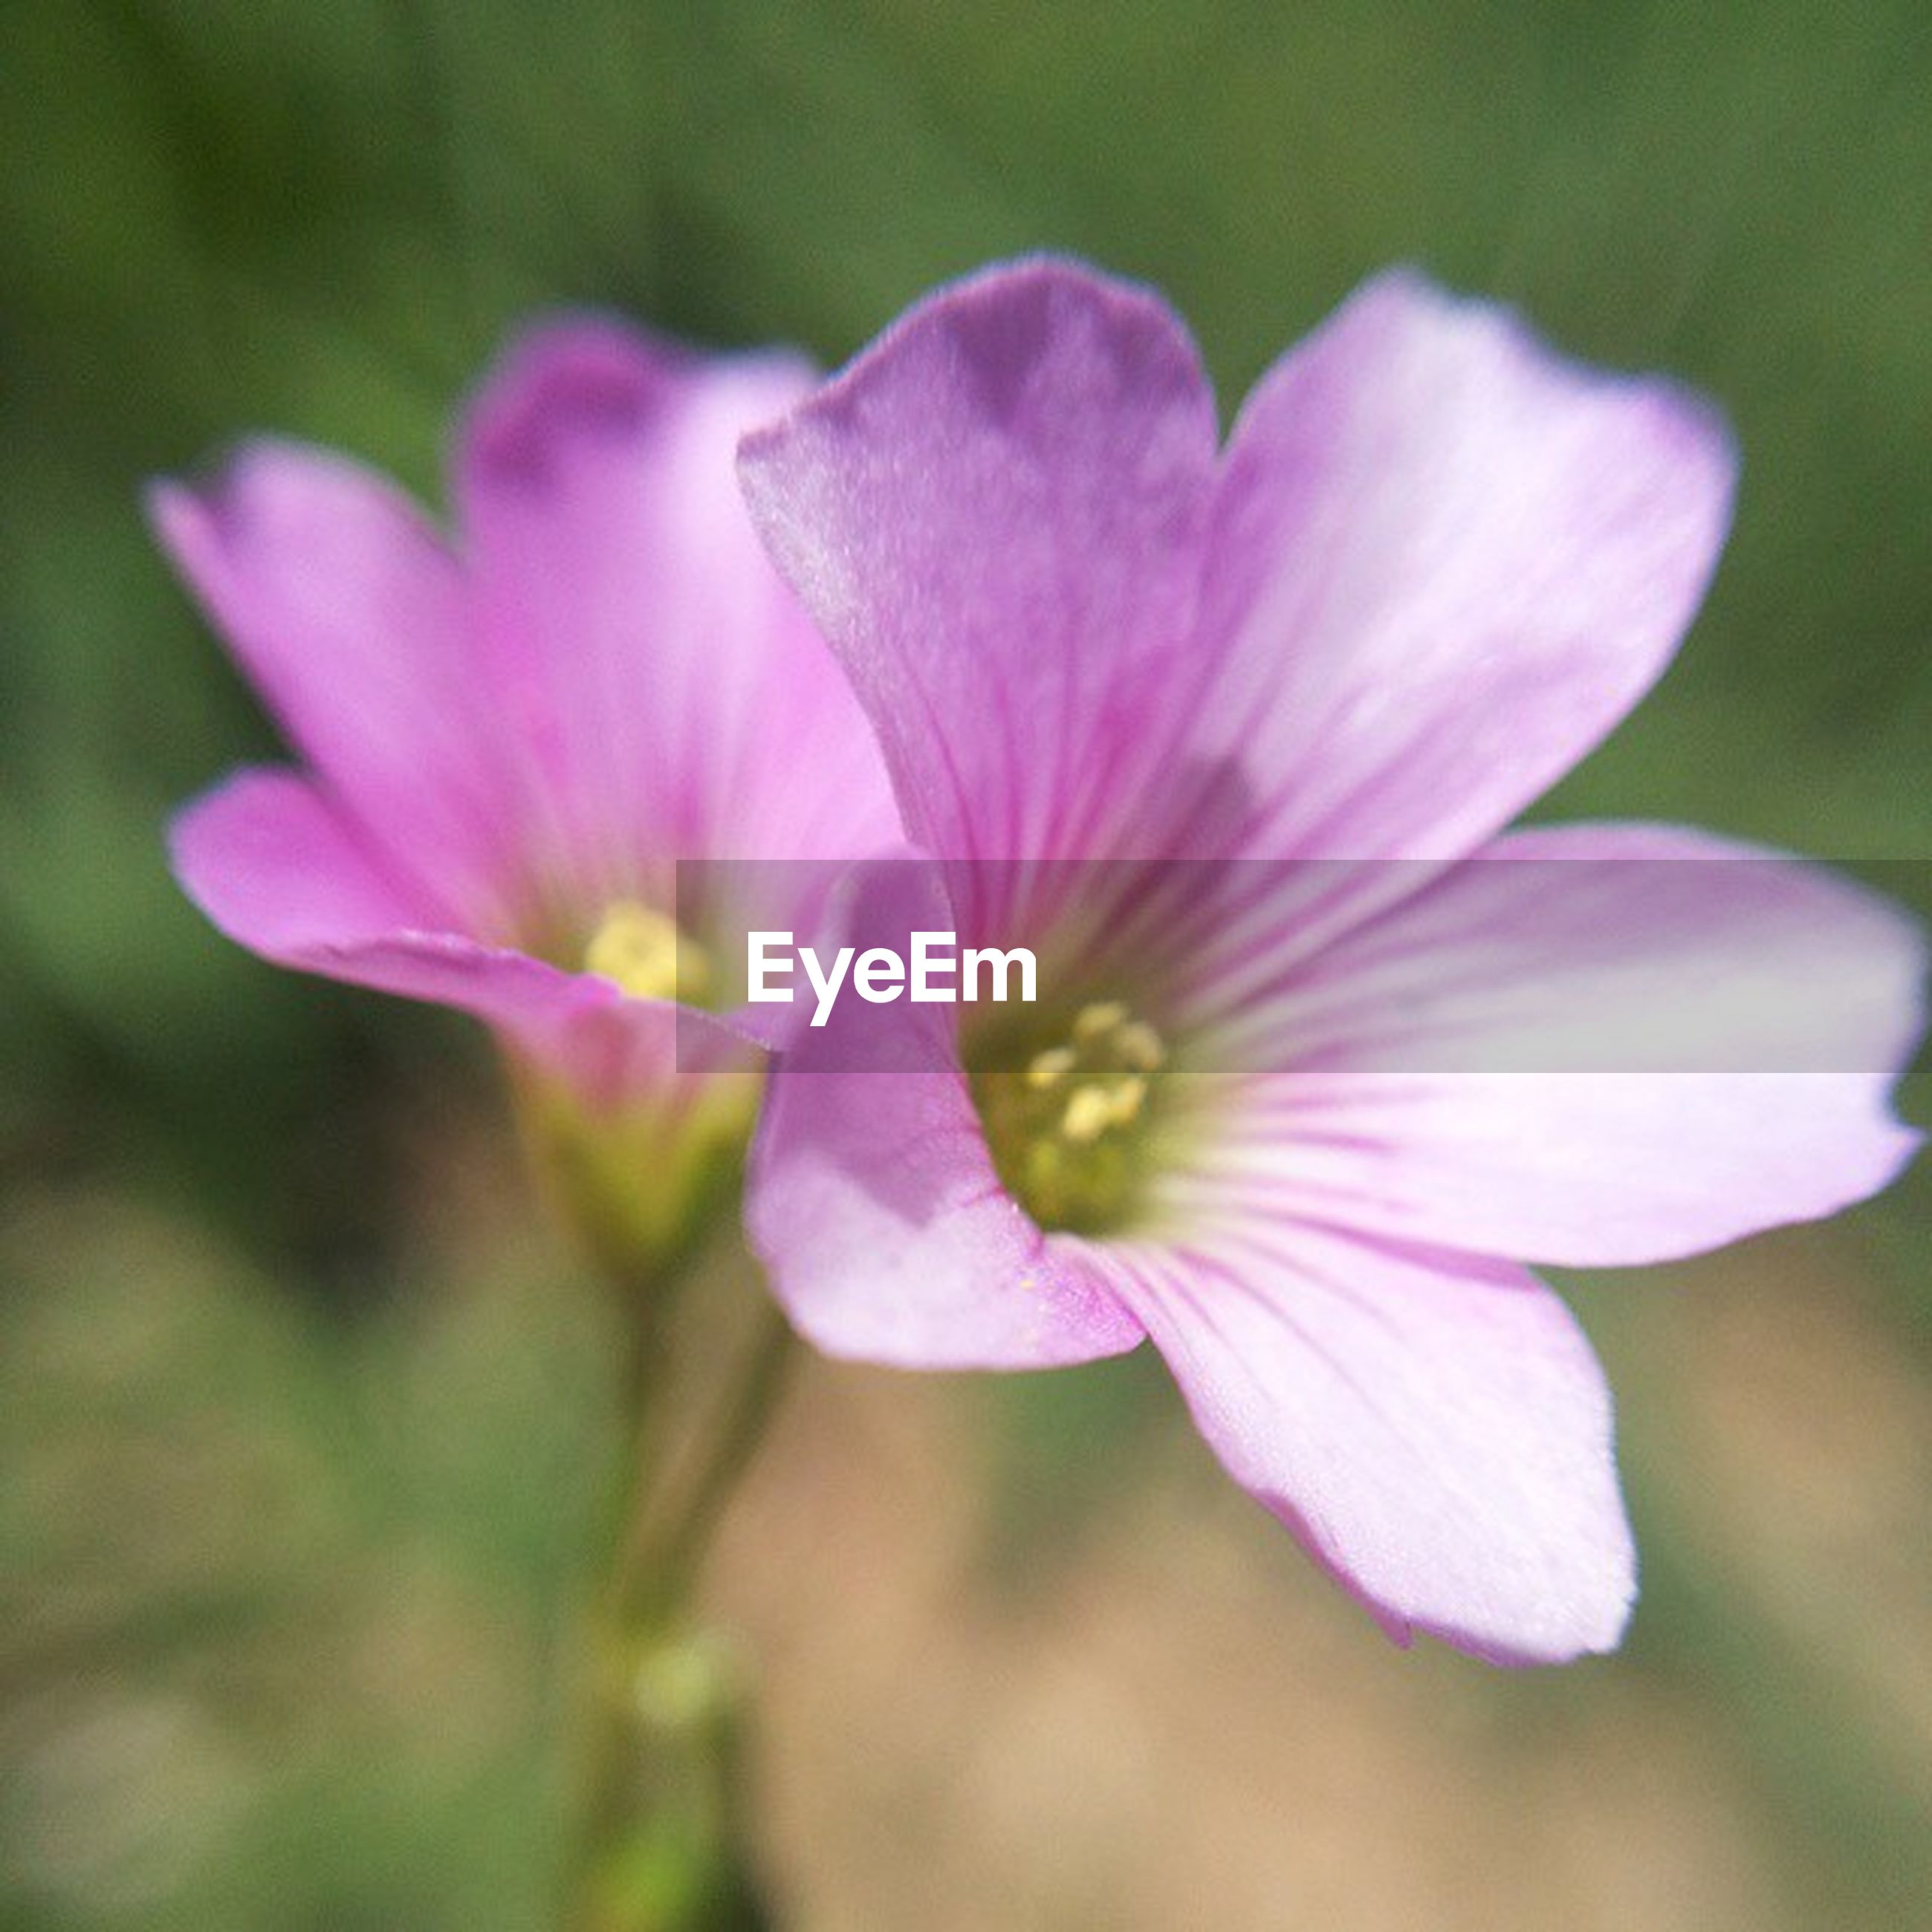 flower, petal, freshness, fragility, flower head, close-up, growth, beauty in nature, focus on foreground, pink color, nature, single flower, blooming, stamen, pollen, in bloom, purple, selective focus, blossom, plant